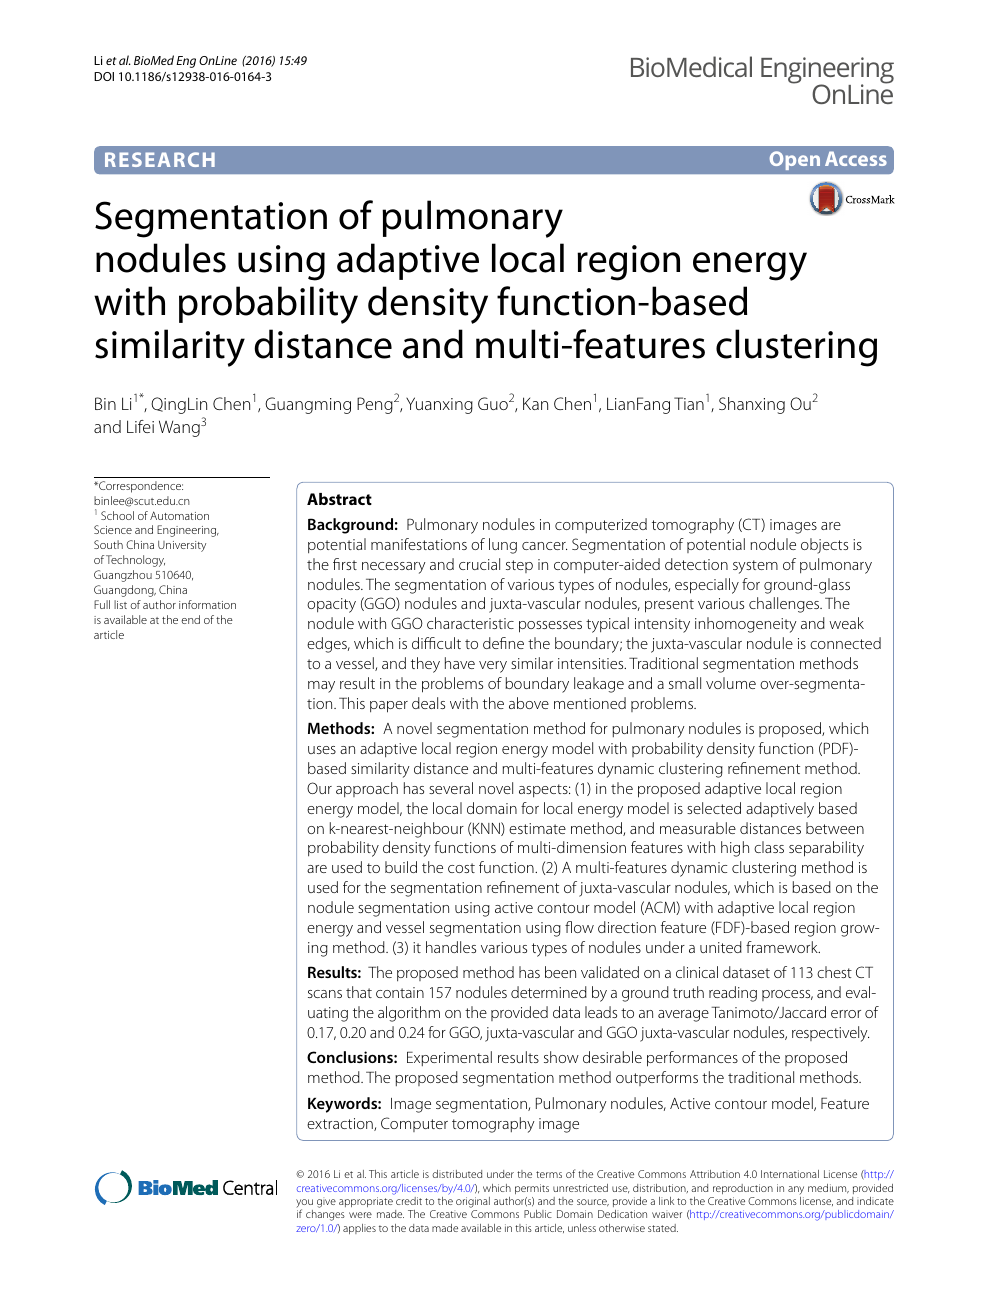 Segmentation of pulmonary nodules using adaptive local